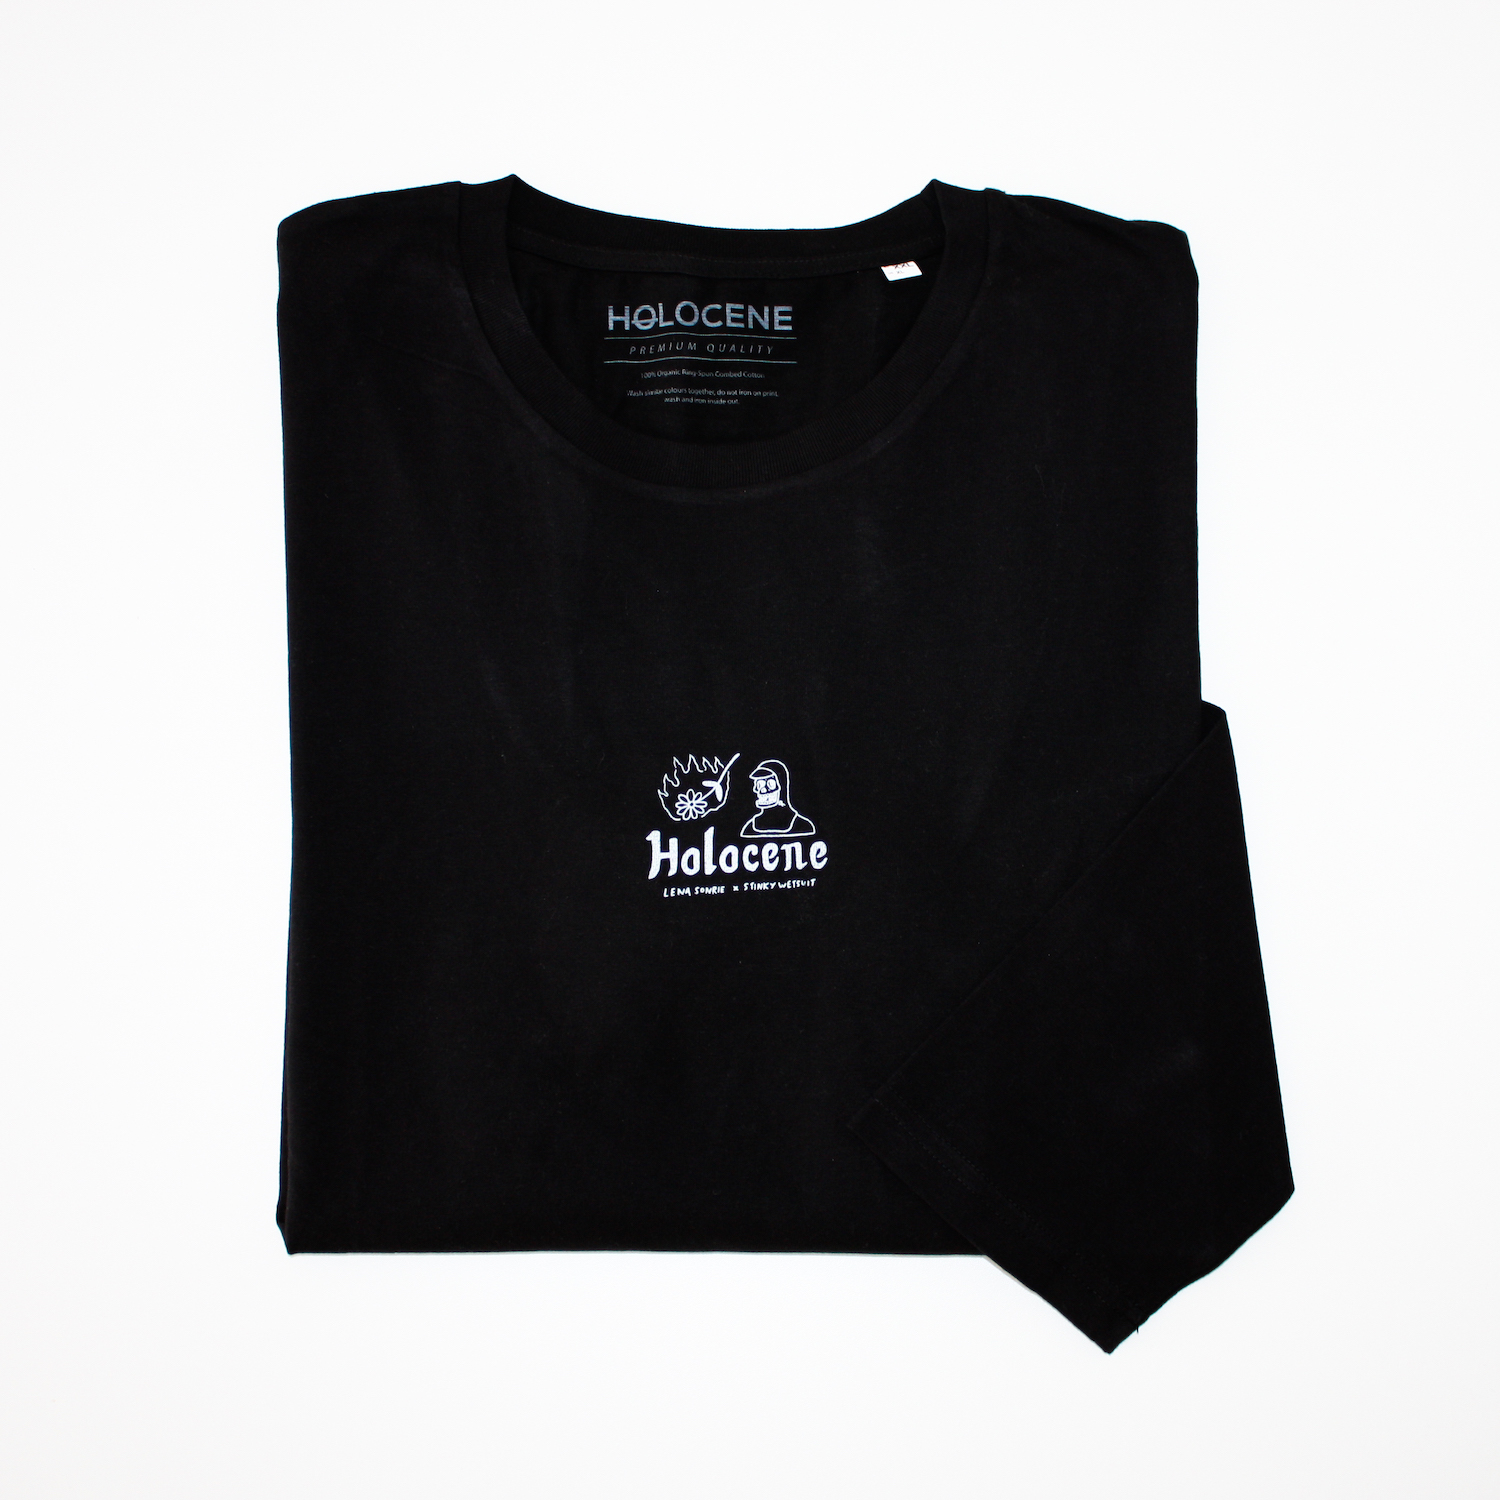 Anthropocene Black Tee